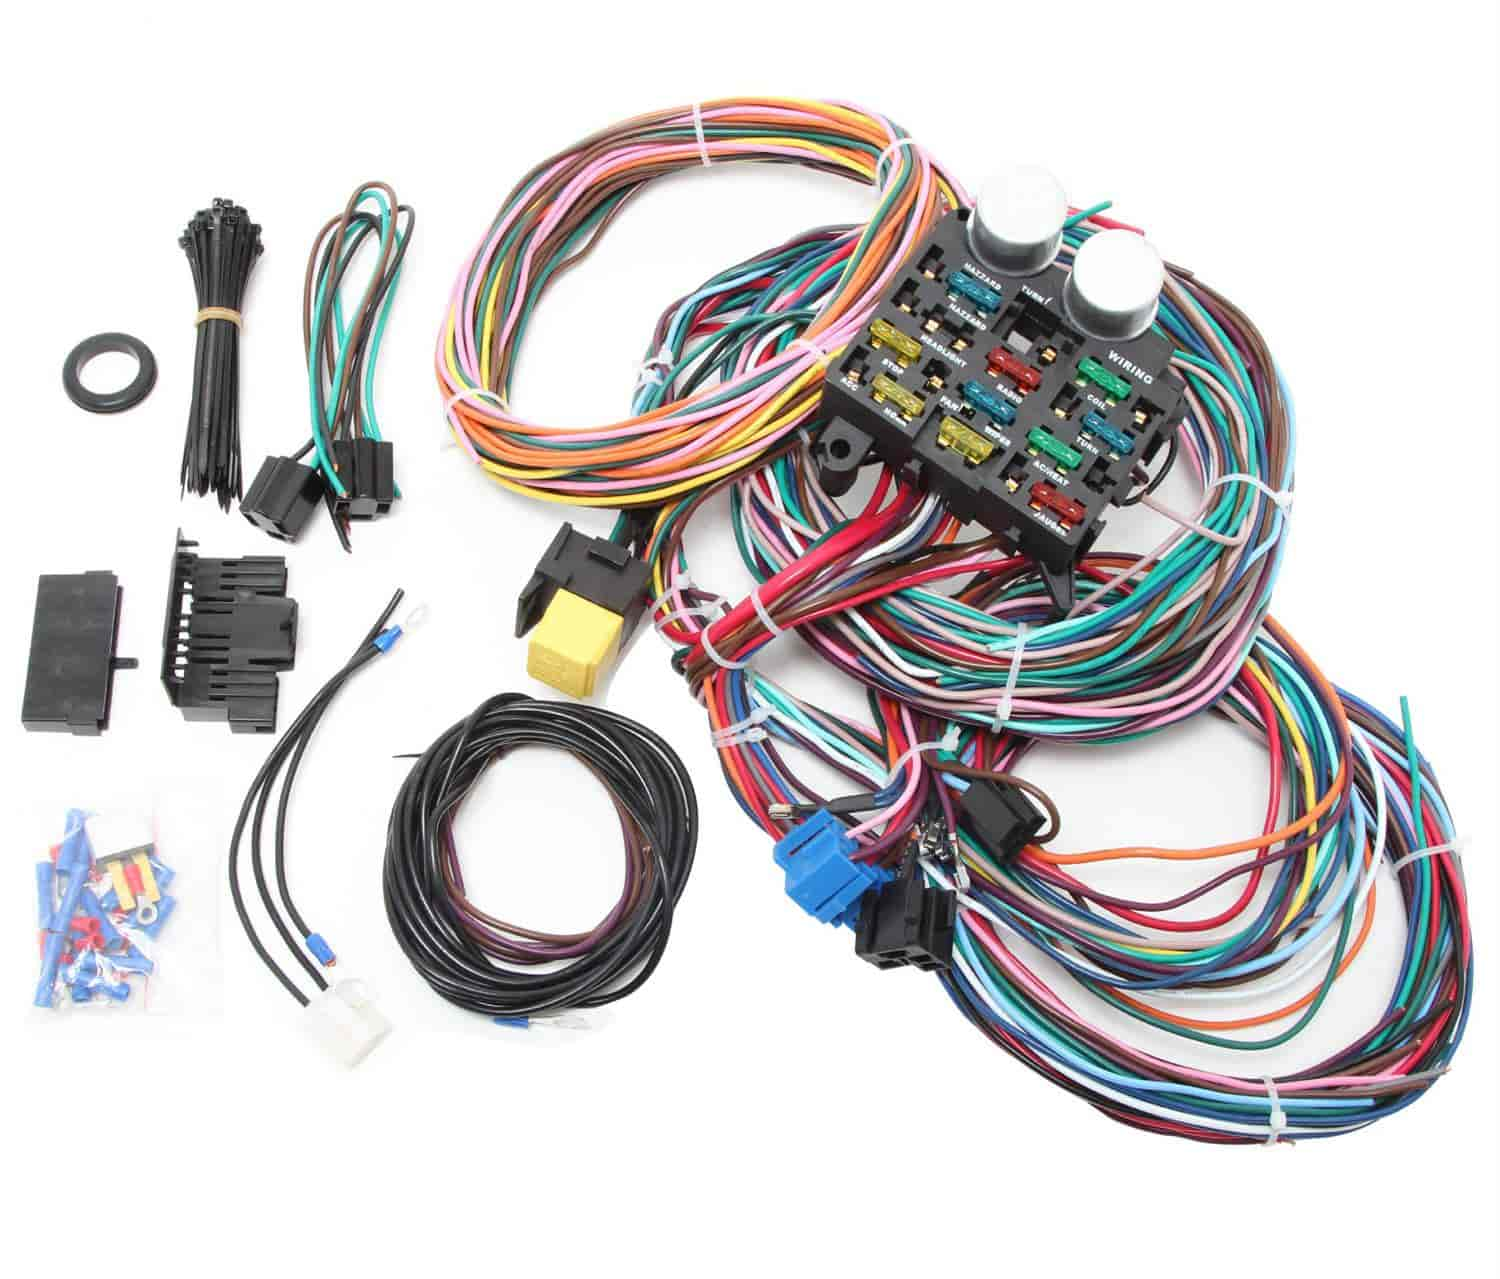 707 r1002x rpc r1002x universal 12 circuit wire harness kit jegs jegs universal wiring harness at edmiracle.co